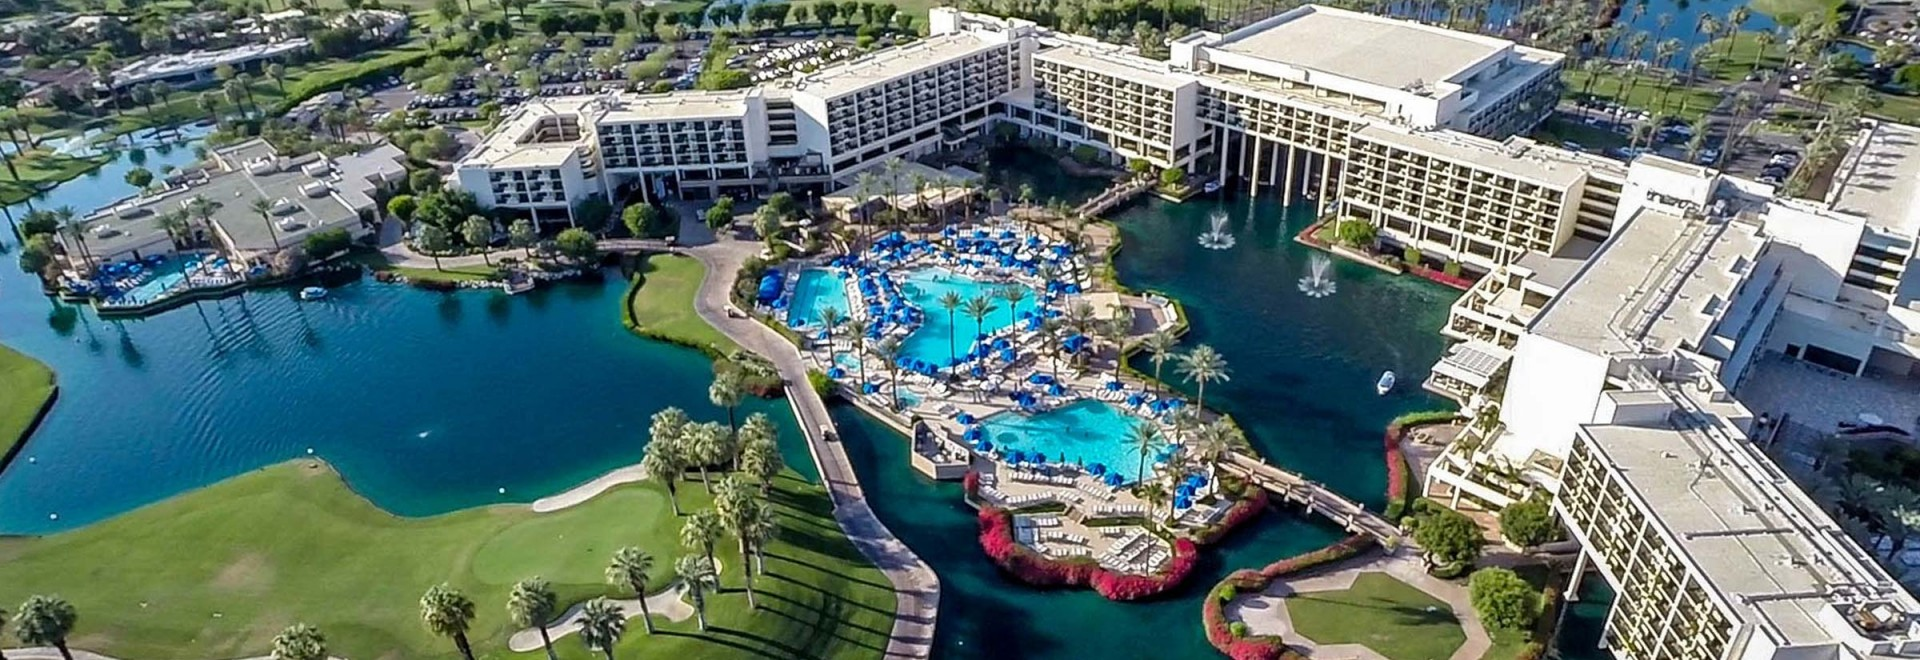 JW Marriott Desert Springs Resort & Spa, California - Book. Travel. Play.